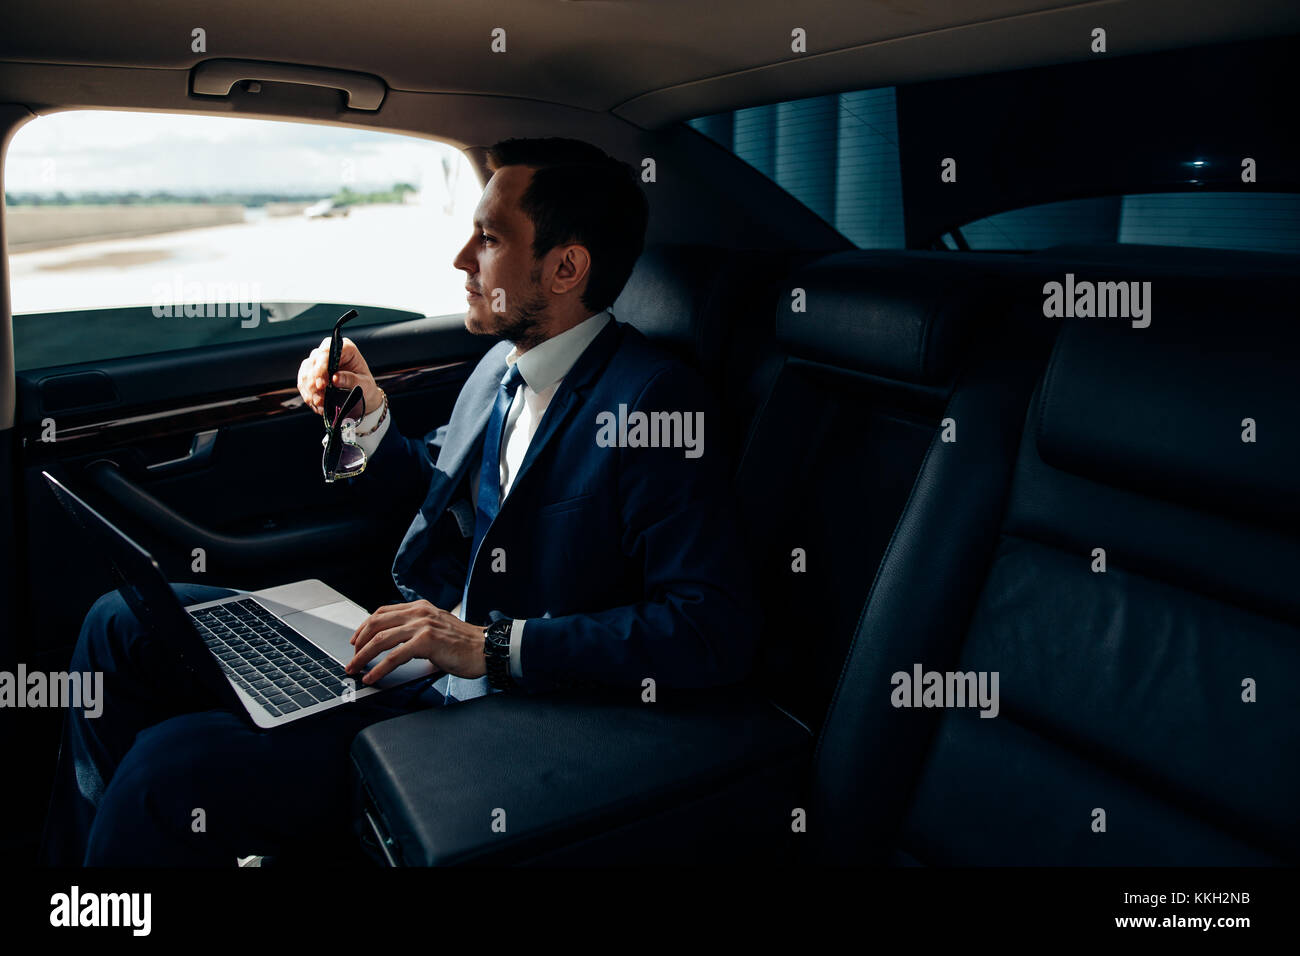 Focusing on work. businessman working on laptop while sitting on back seat car - Stock Image